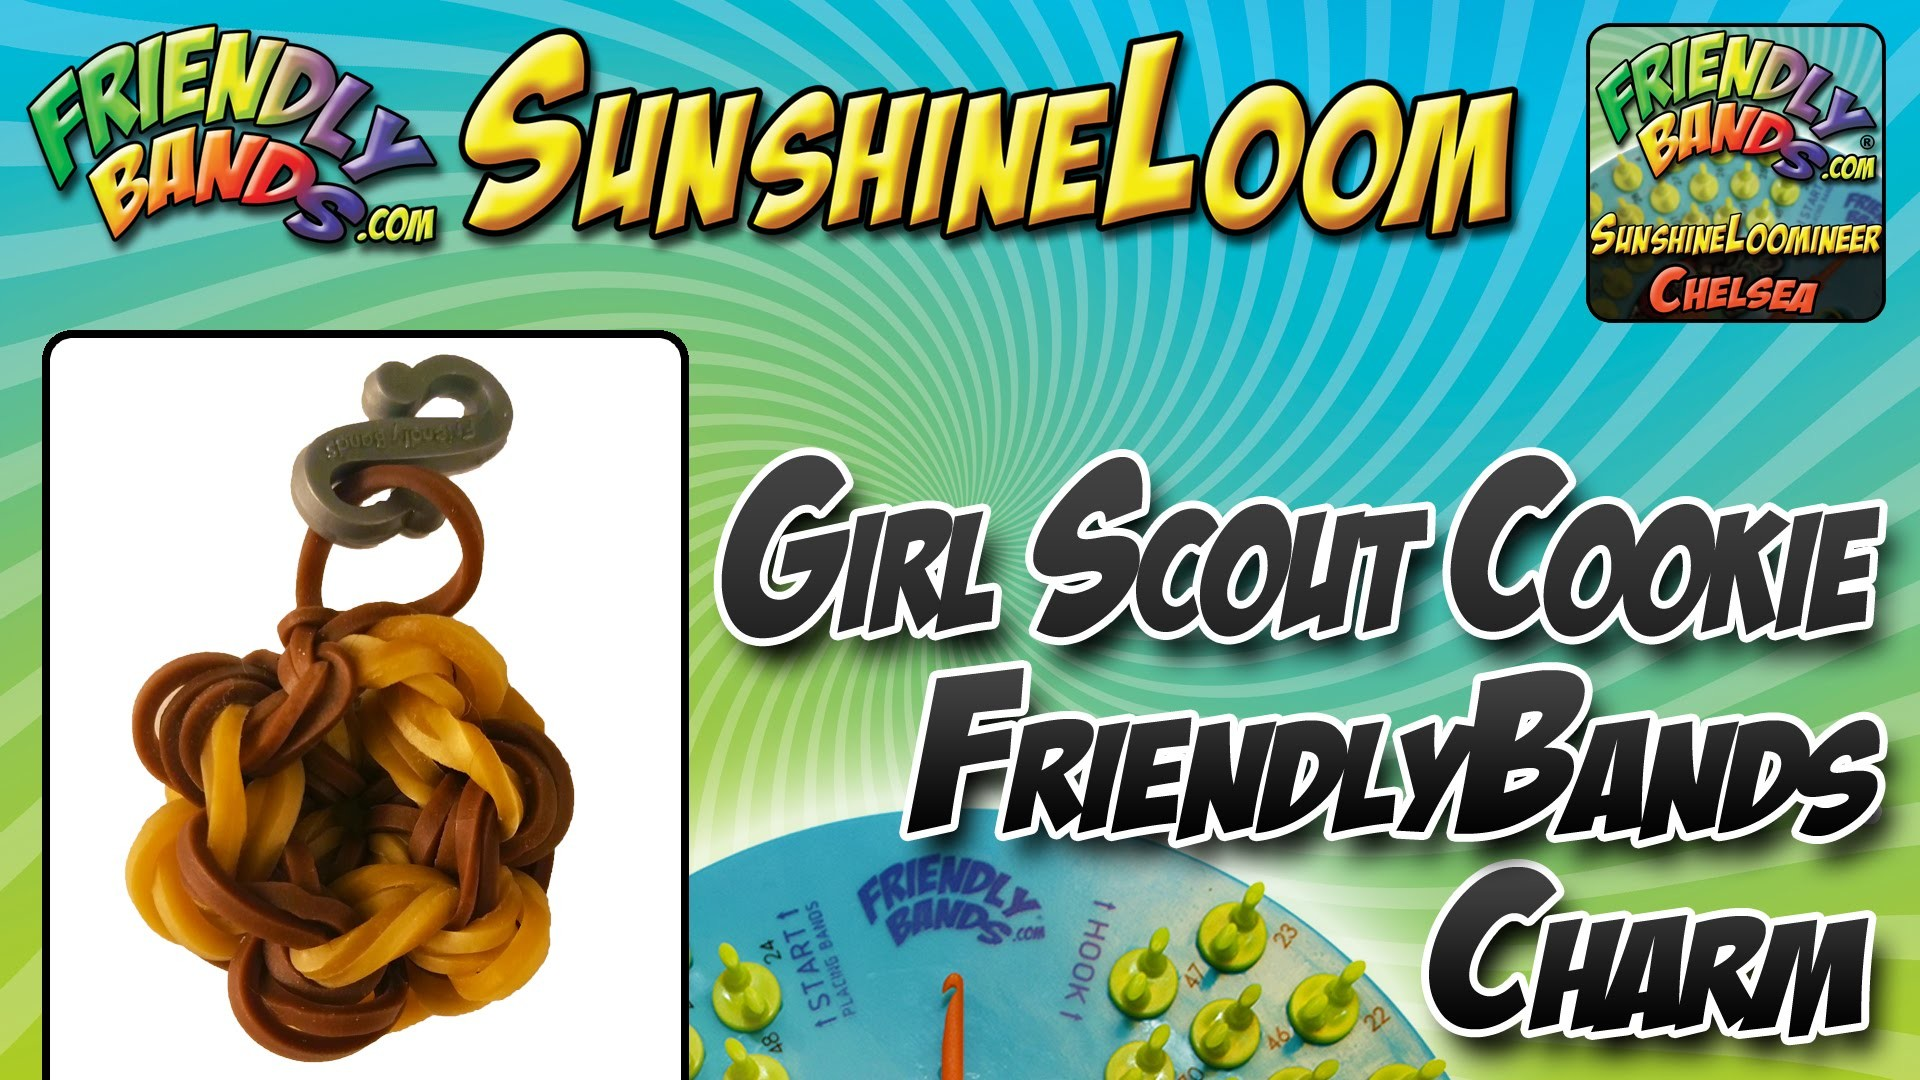 How to Make a FriendlyBands SunshineLoom - Girl Scout Cookie Charm Tutorial